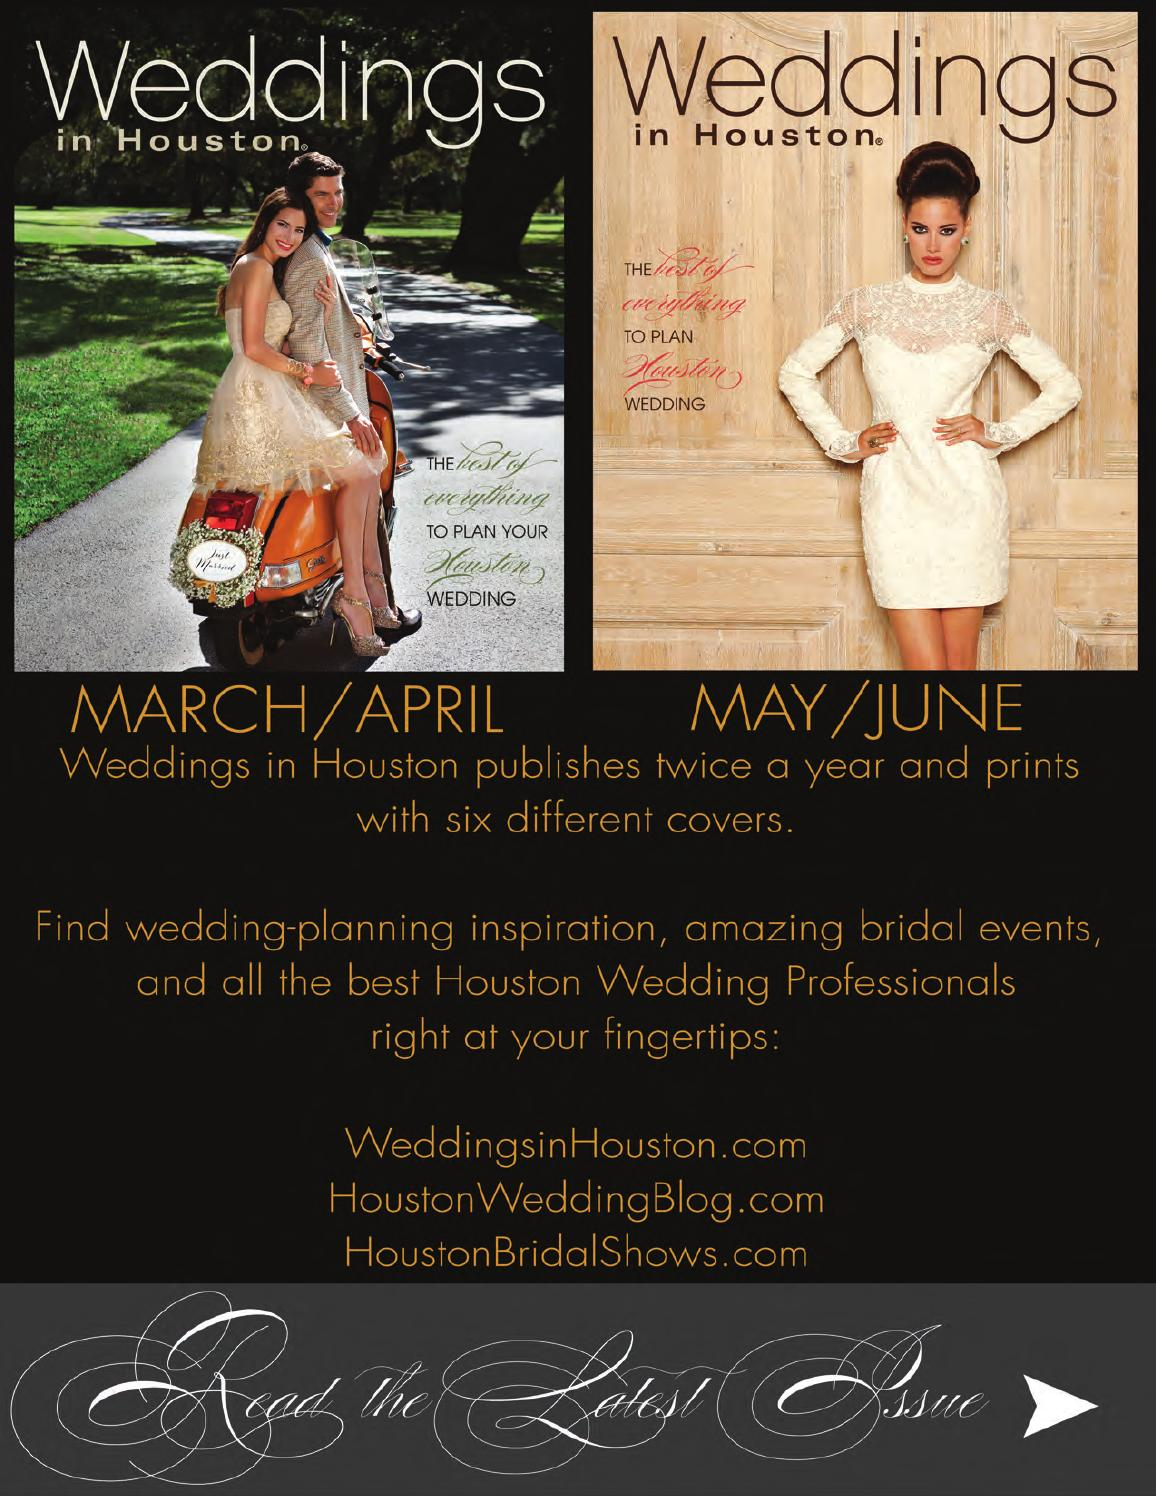 Weddings in Houston - MARCH APRIL 2014 by Weddings in Houston - issuu 682e5c38f